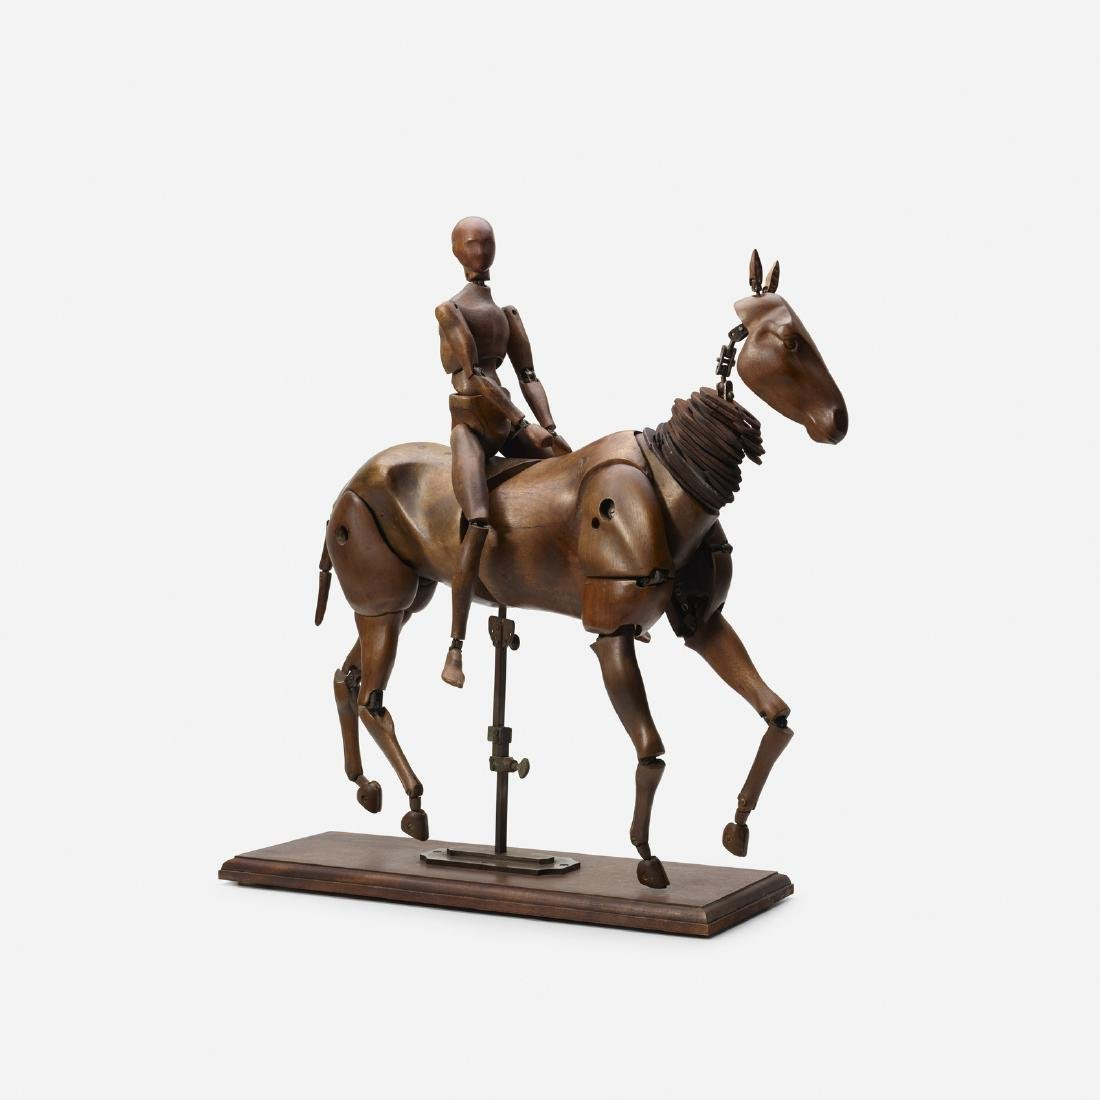 French, rare articulated horse, rider artist's models